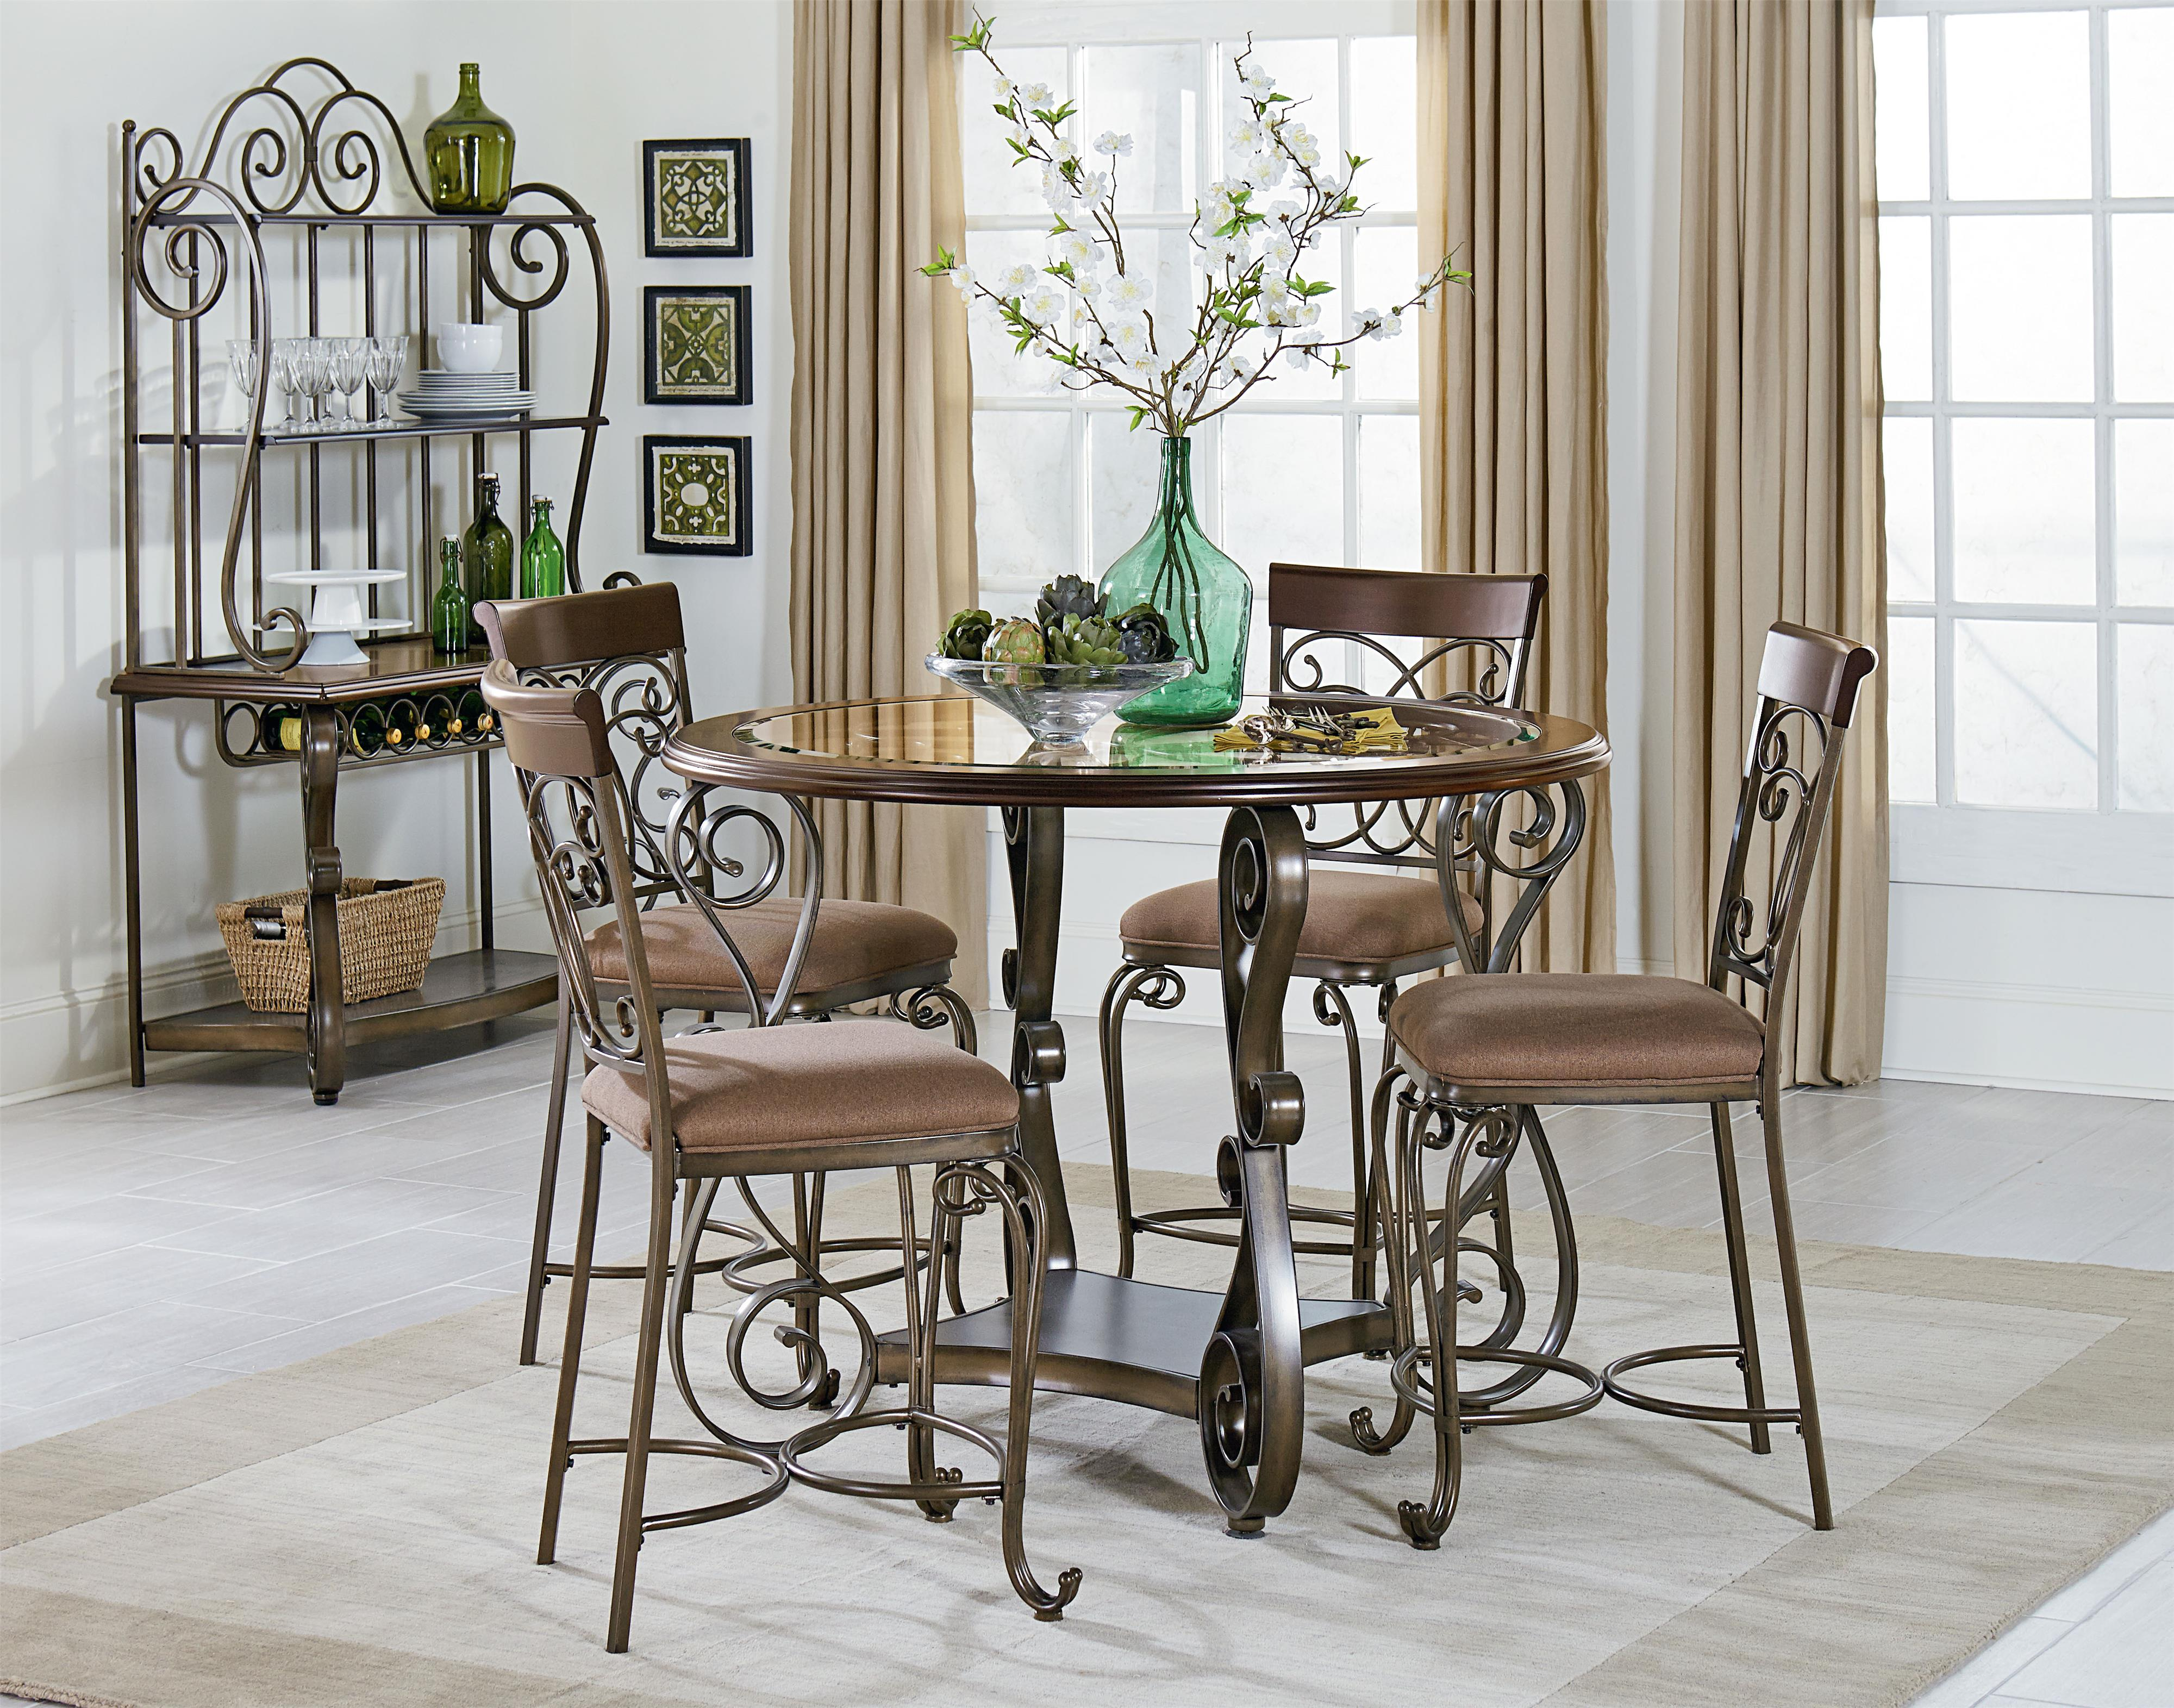 Standard Furniture Bombay Casual Dining Room Group - Item Number: 13420 Casual Dining Group 2